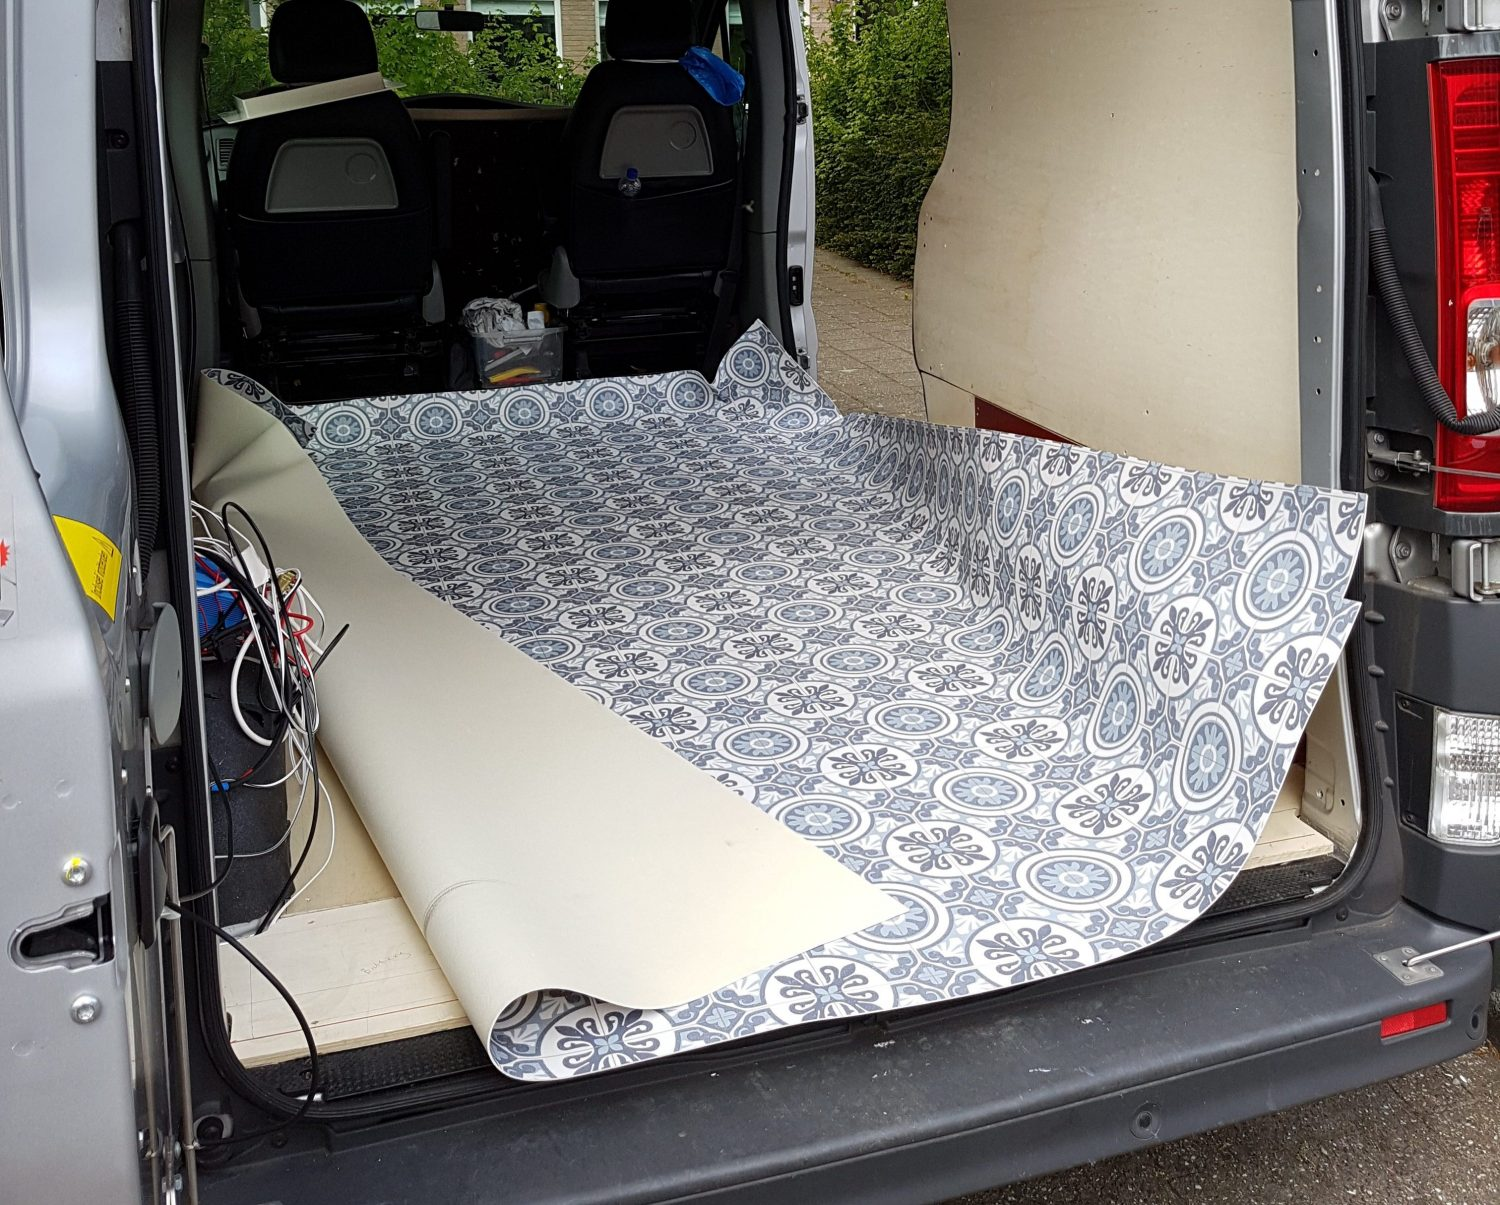 The Floor, Ceiling and Walls - DIY Renault Trafic Campervan